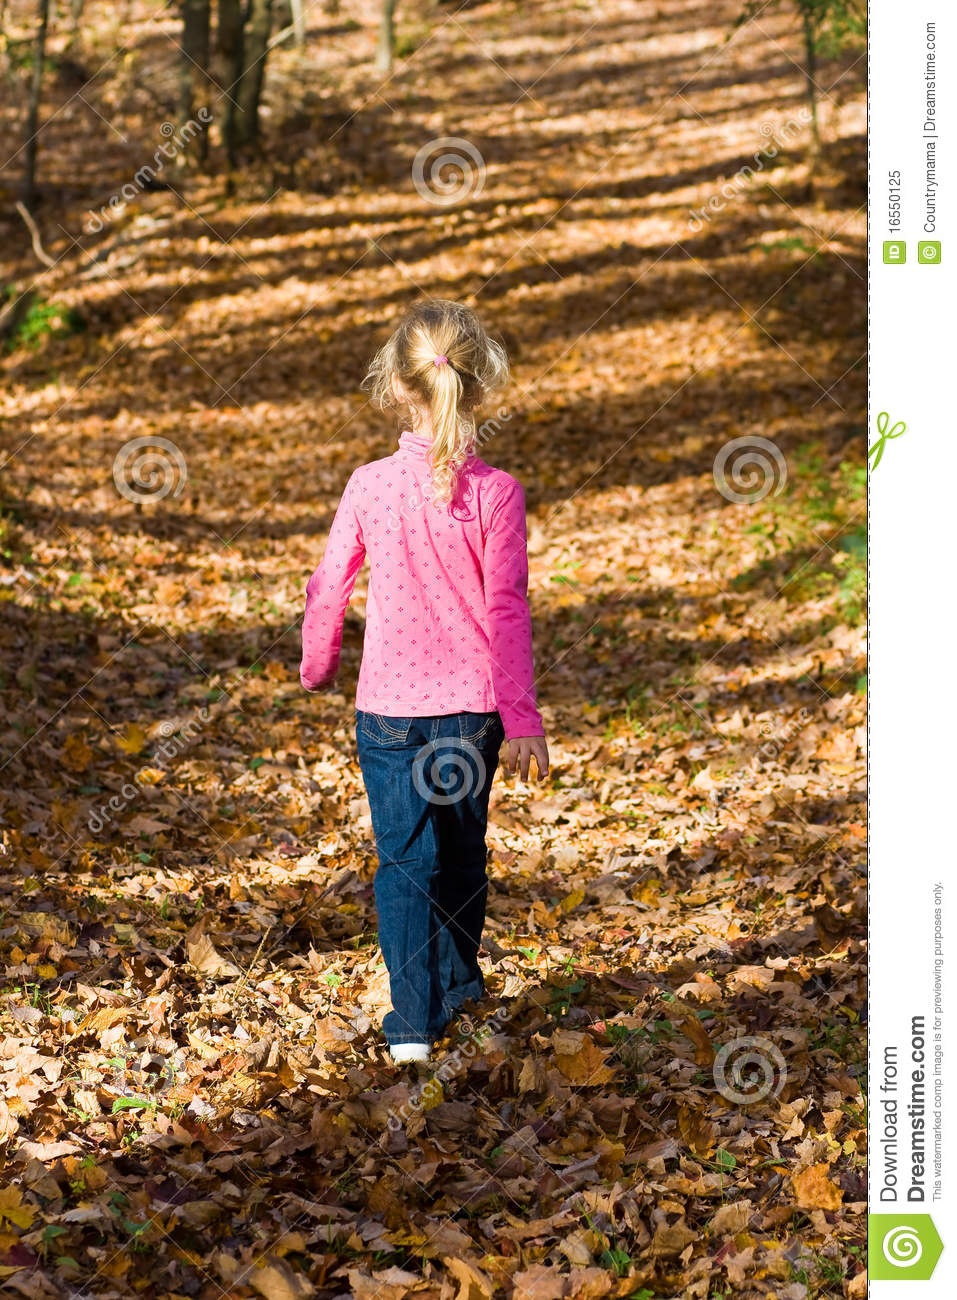 child walking away - photo #16